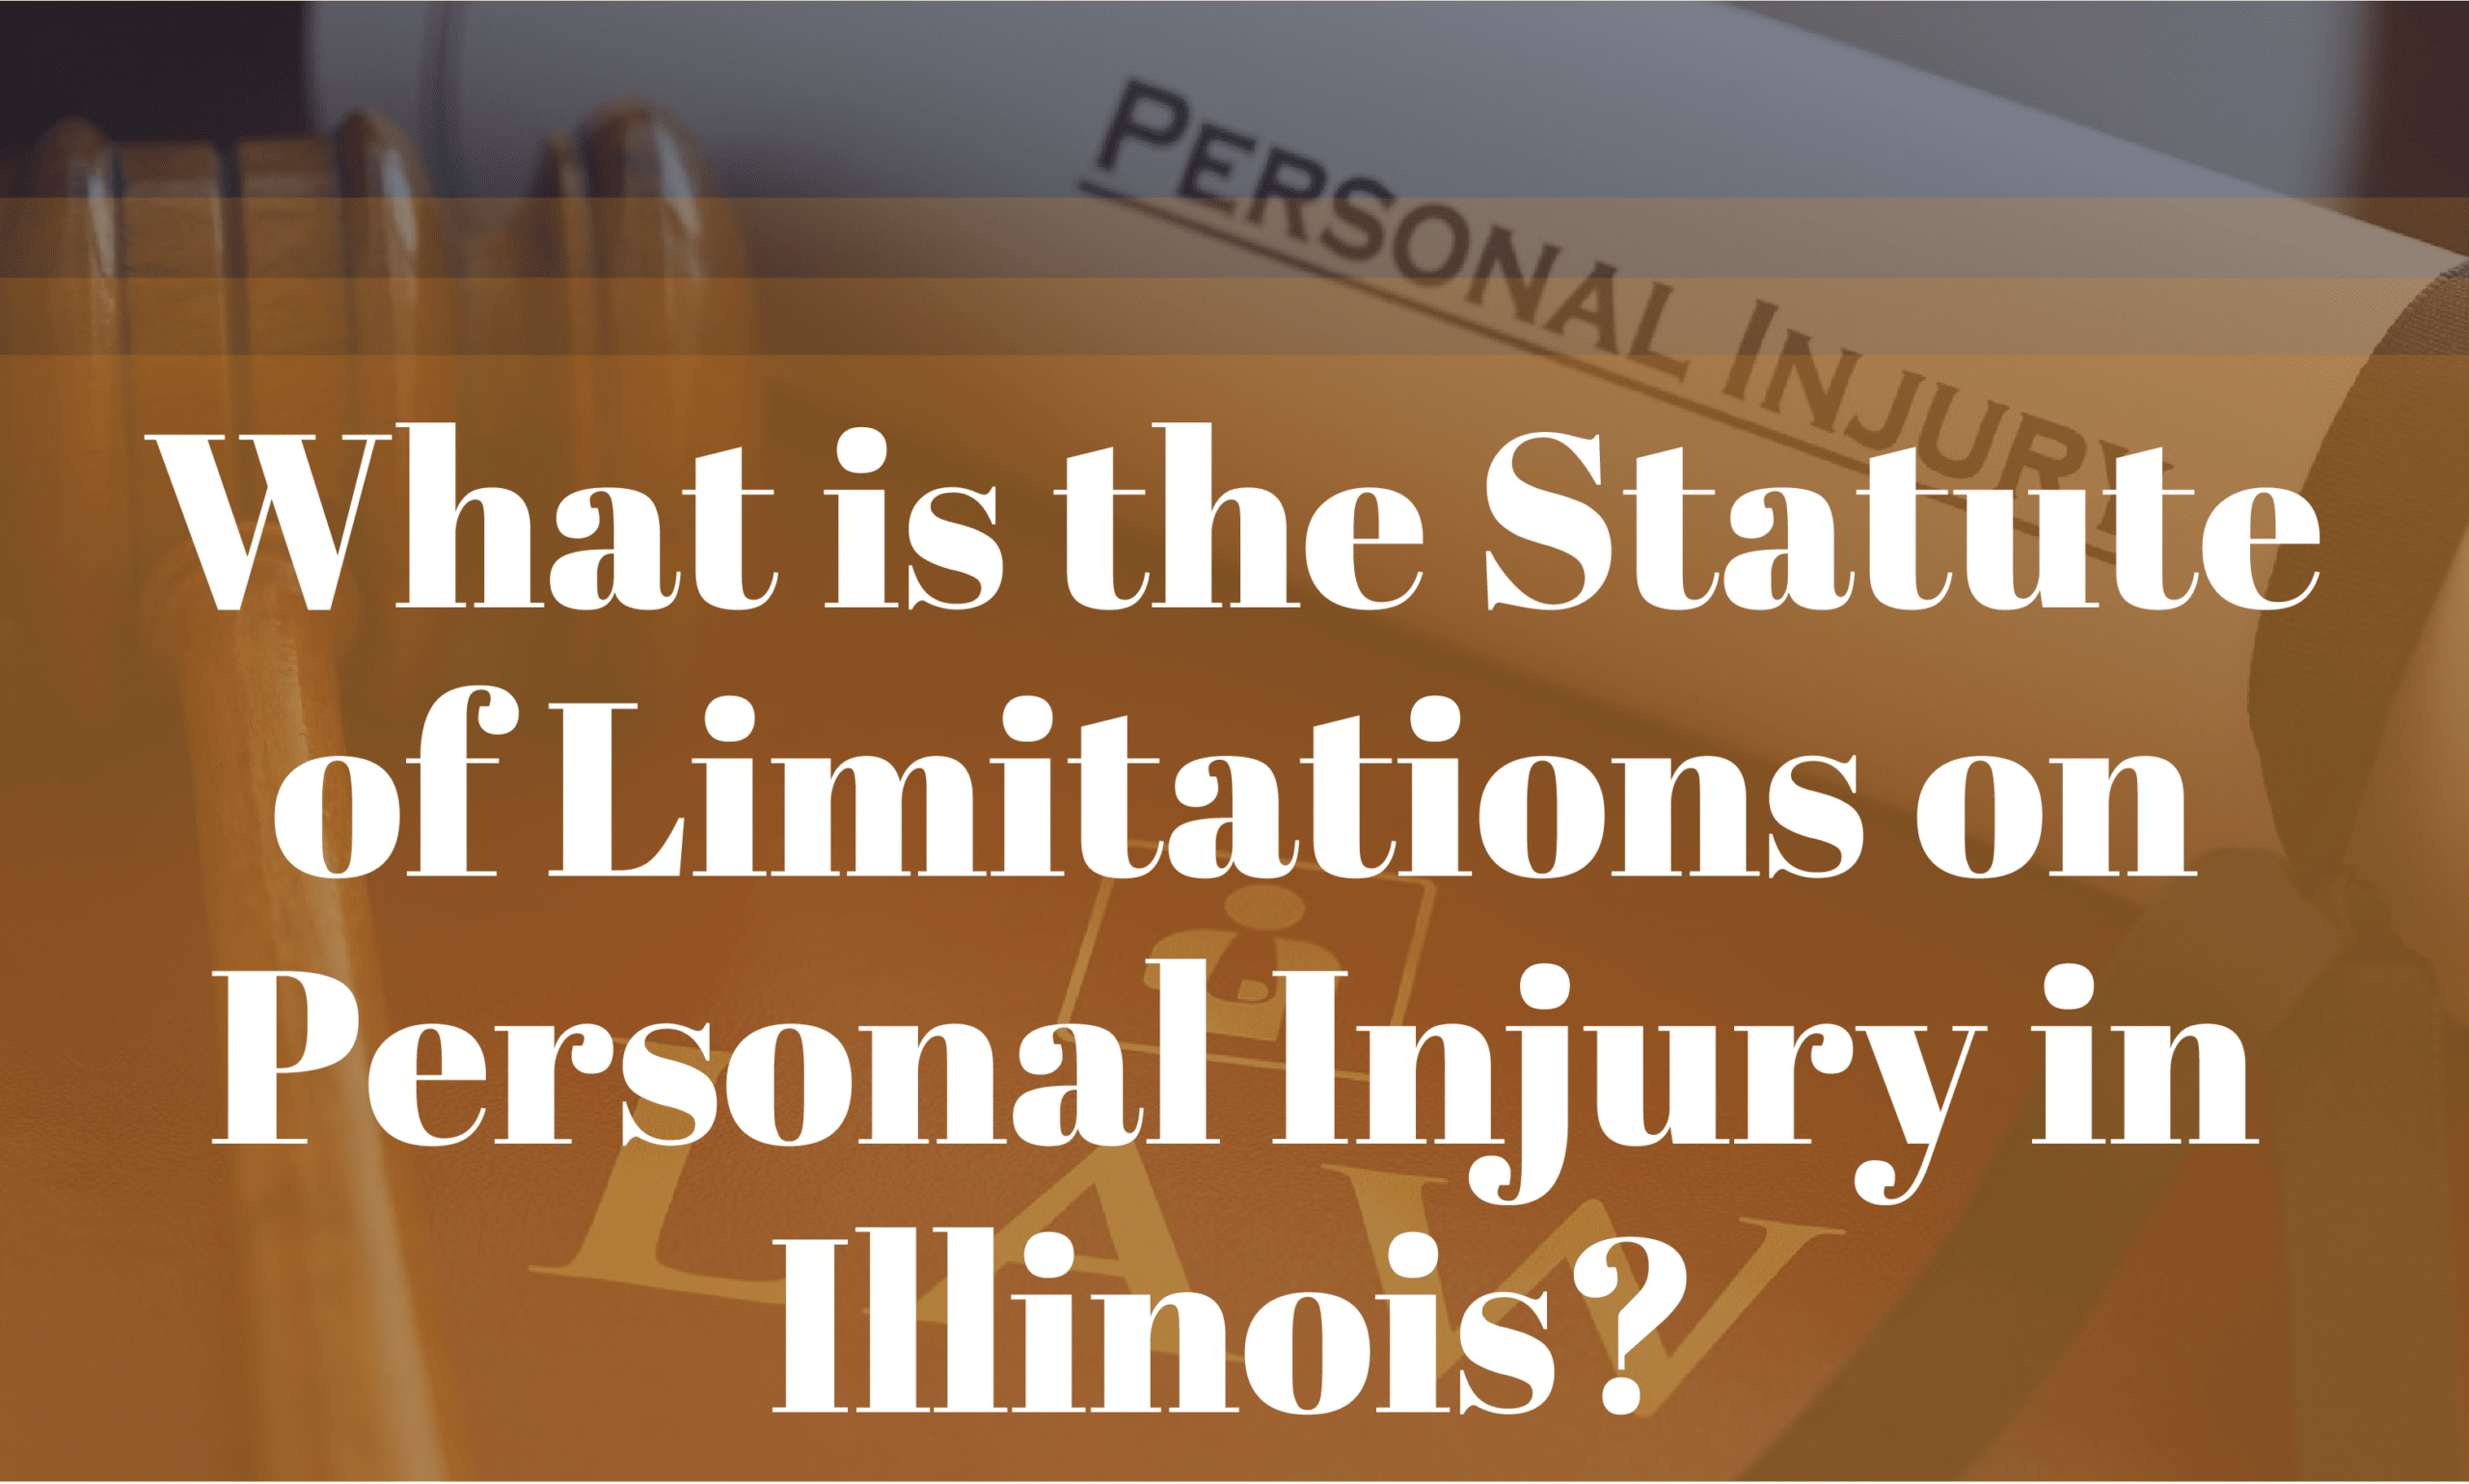 What is the Statute of Limitations on Personal Injury in Illinois?